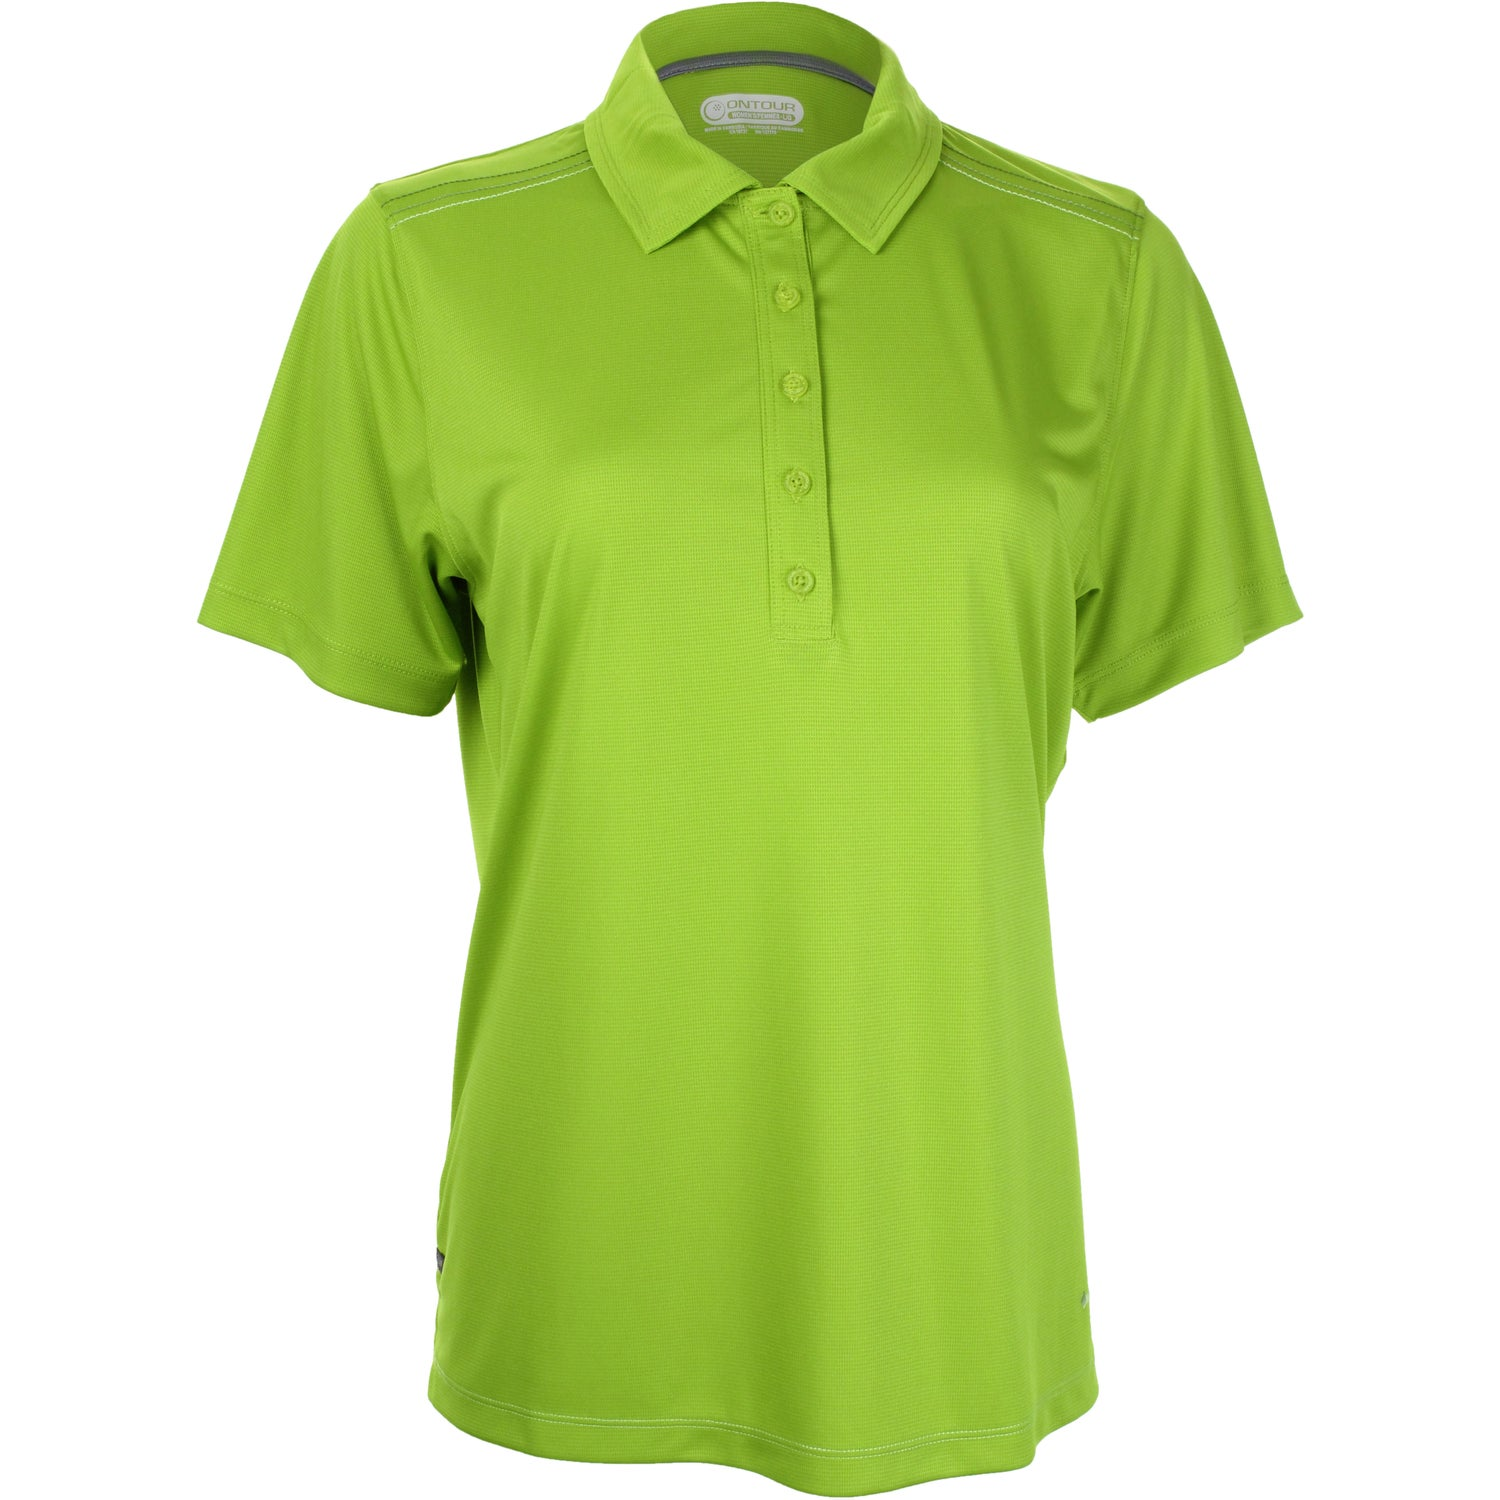 Promotional women 39 s dunlay short sleeve polo shirt by for Quality polo shirts with company logo